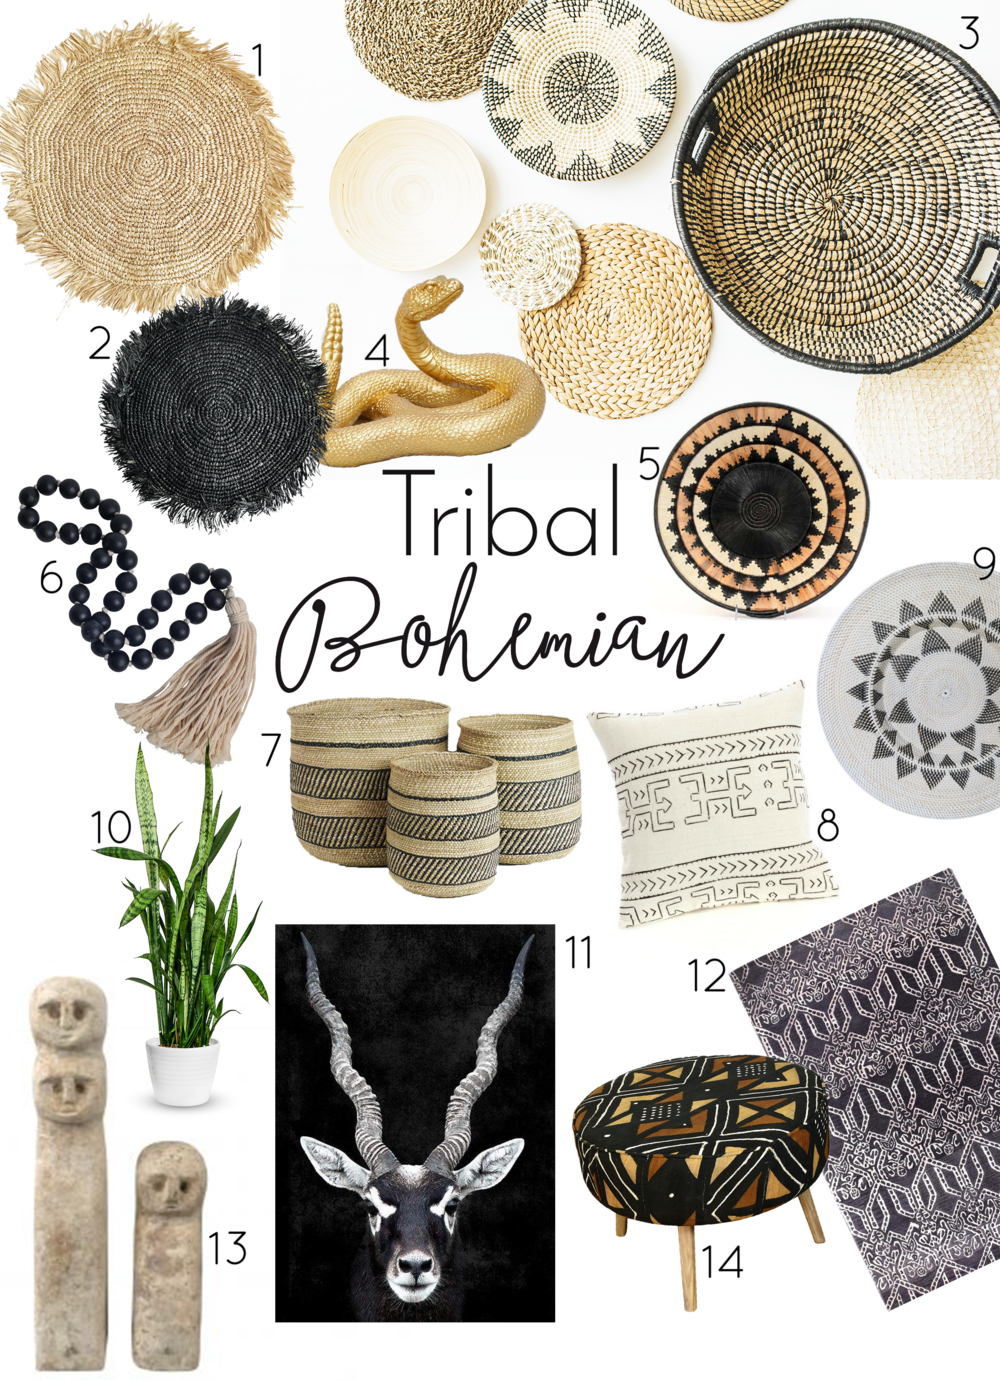 Think of… - Juju hats, animal prints - safari, tribal wall art, jewellery to display, Bali, Africa, Thailand, earthy colours, beads and bones